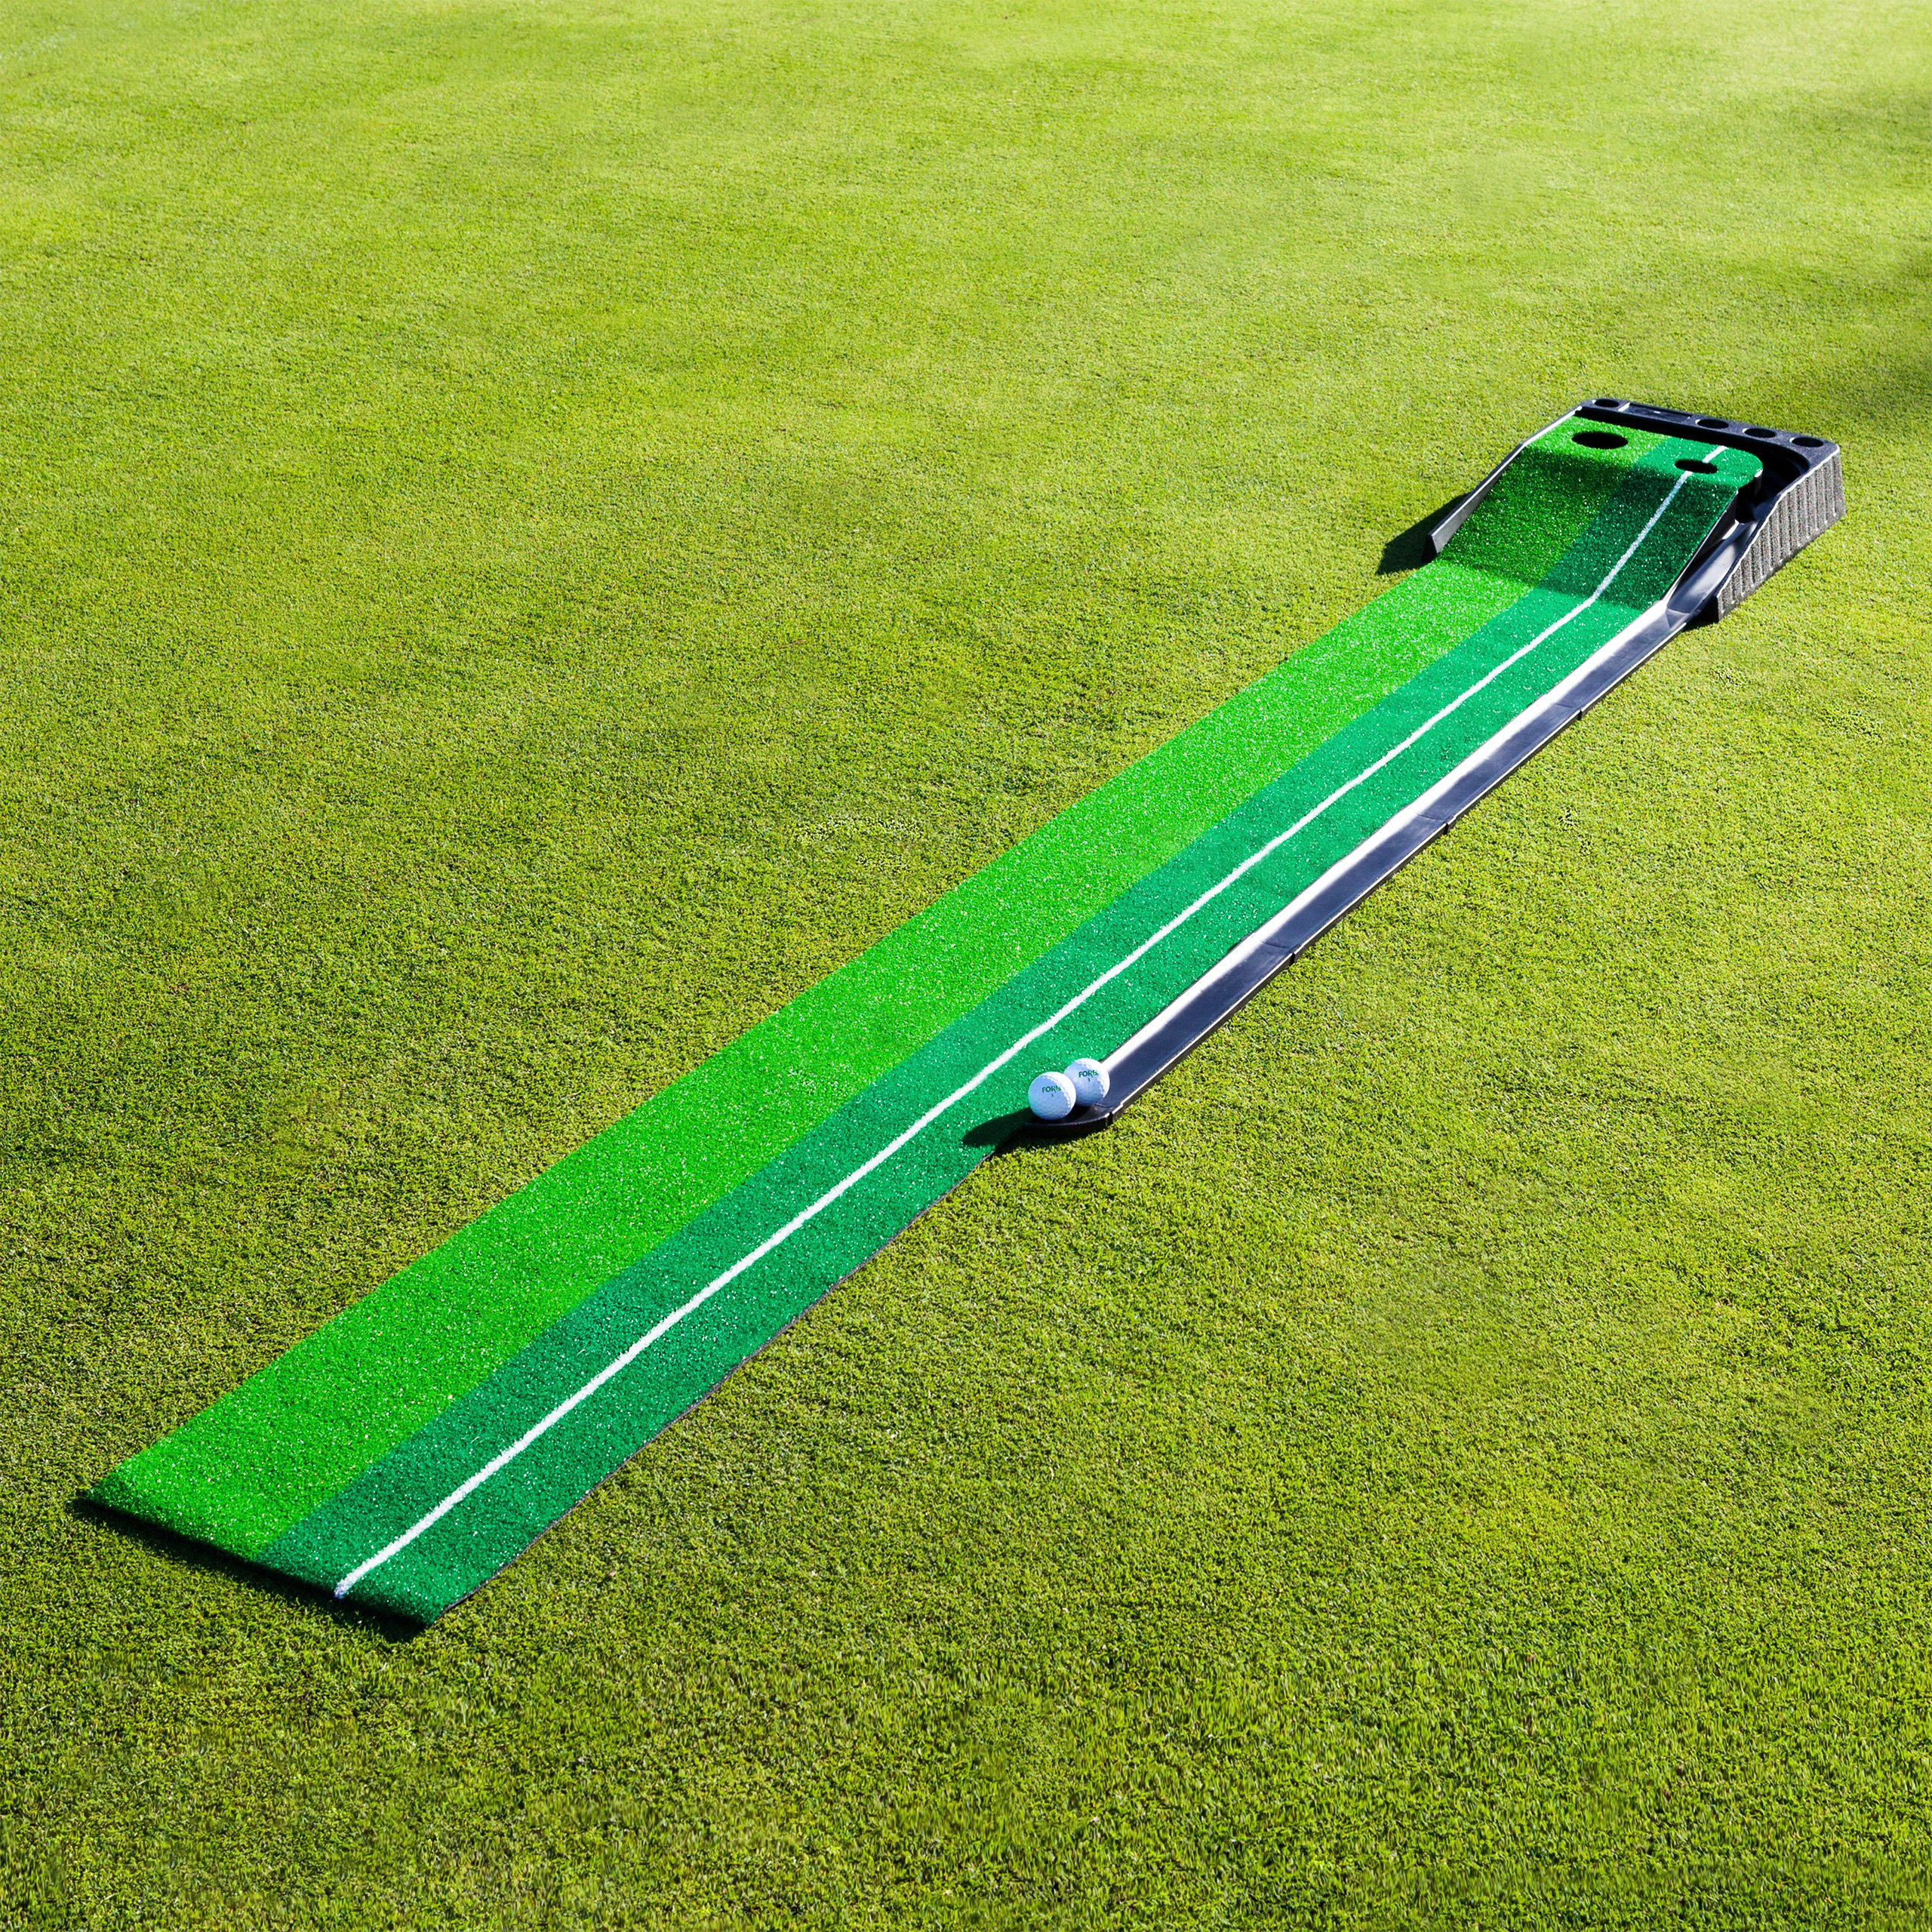 FORB Dual-Speed Golf Putting Mat (10ft x 1ft) - Perfect Your Putting On The Go With This Easy To Manoeuvre Mat [Net World Sport] by FORB (Image #2)